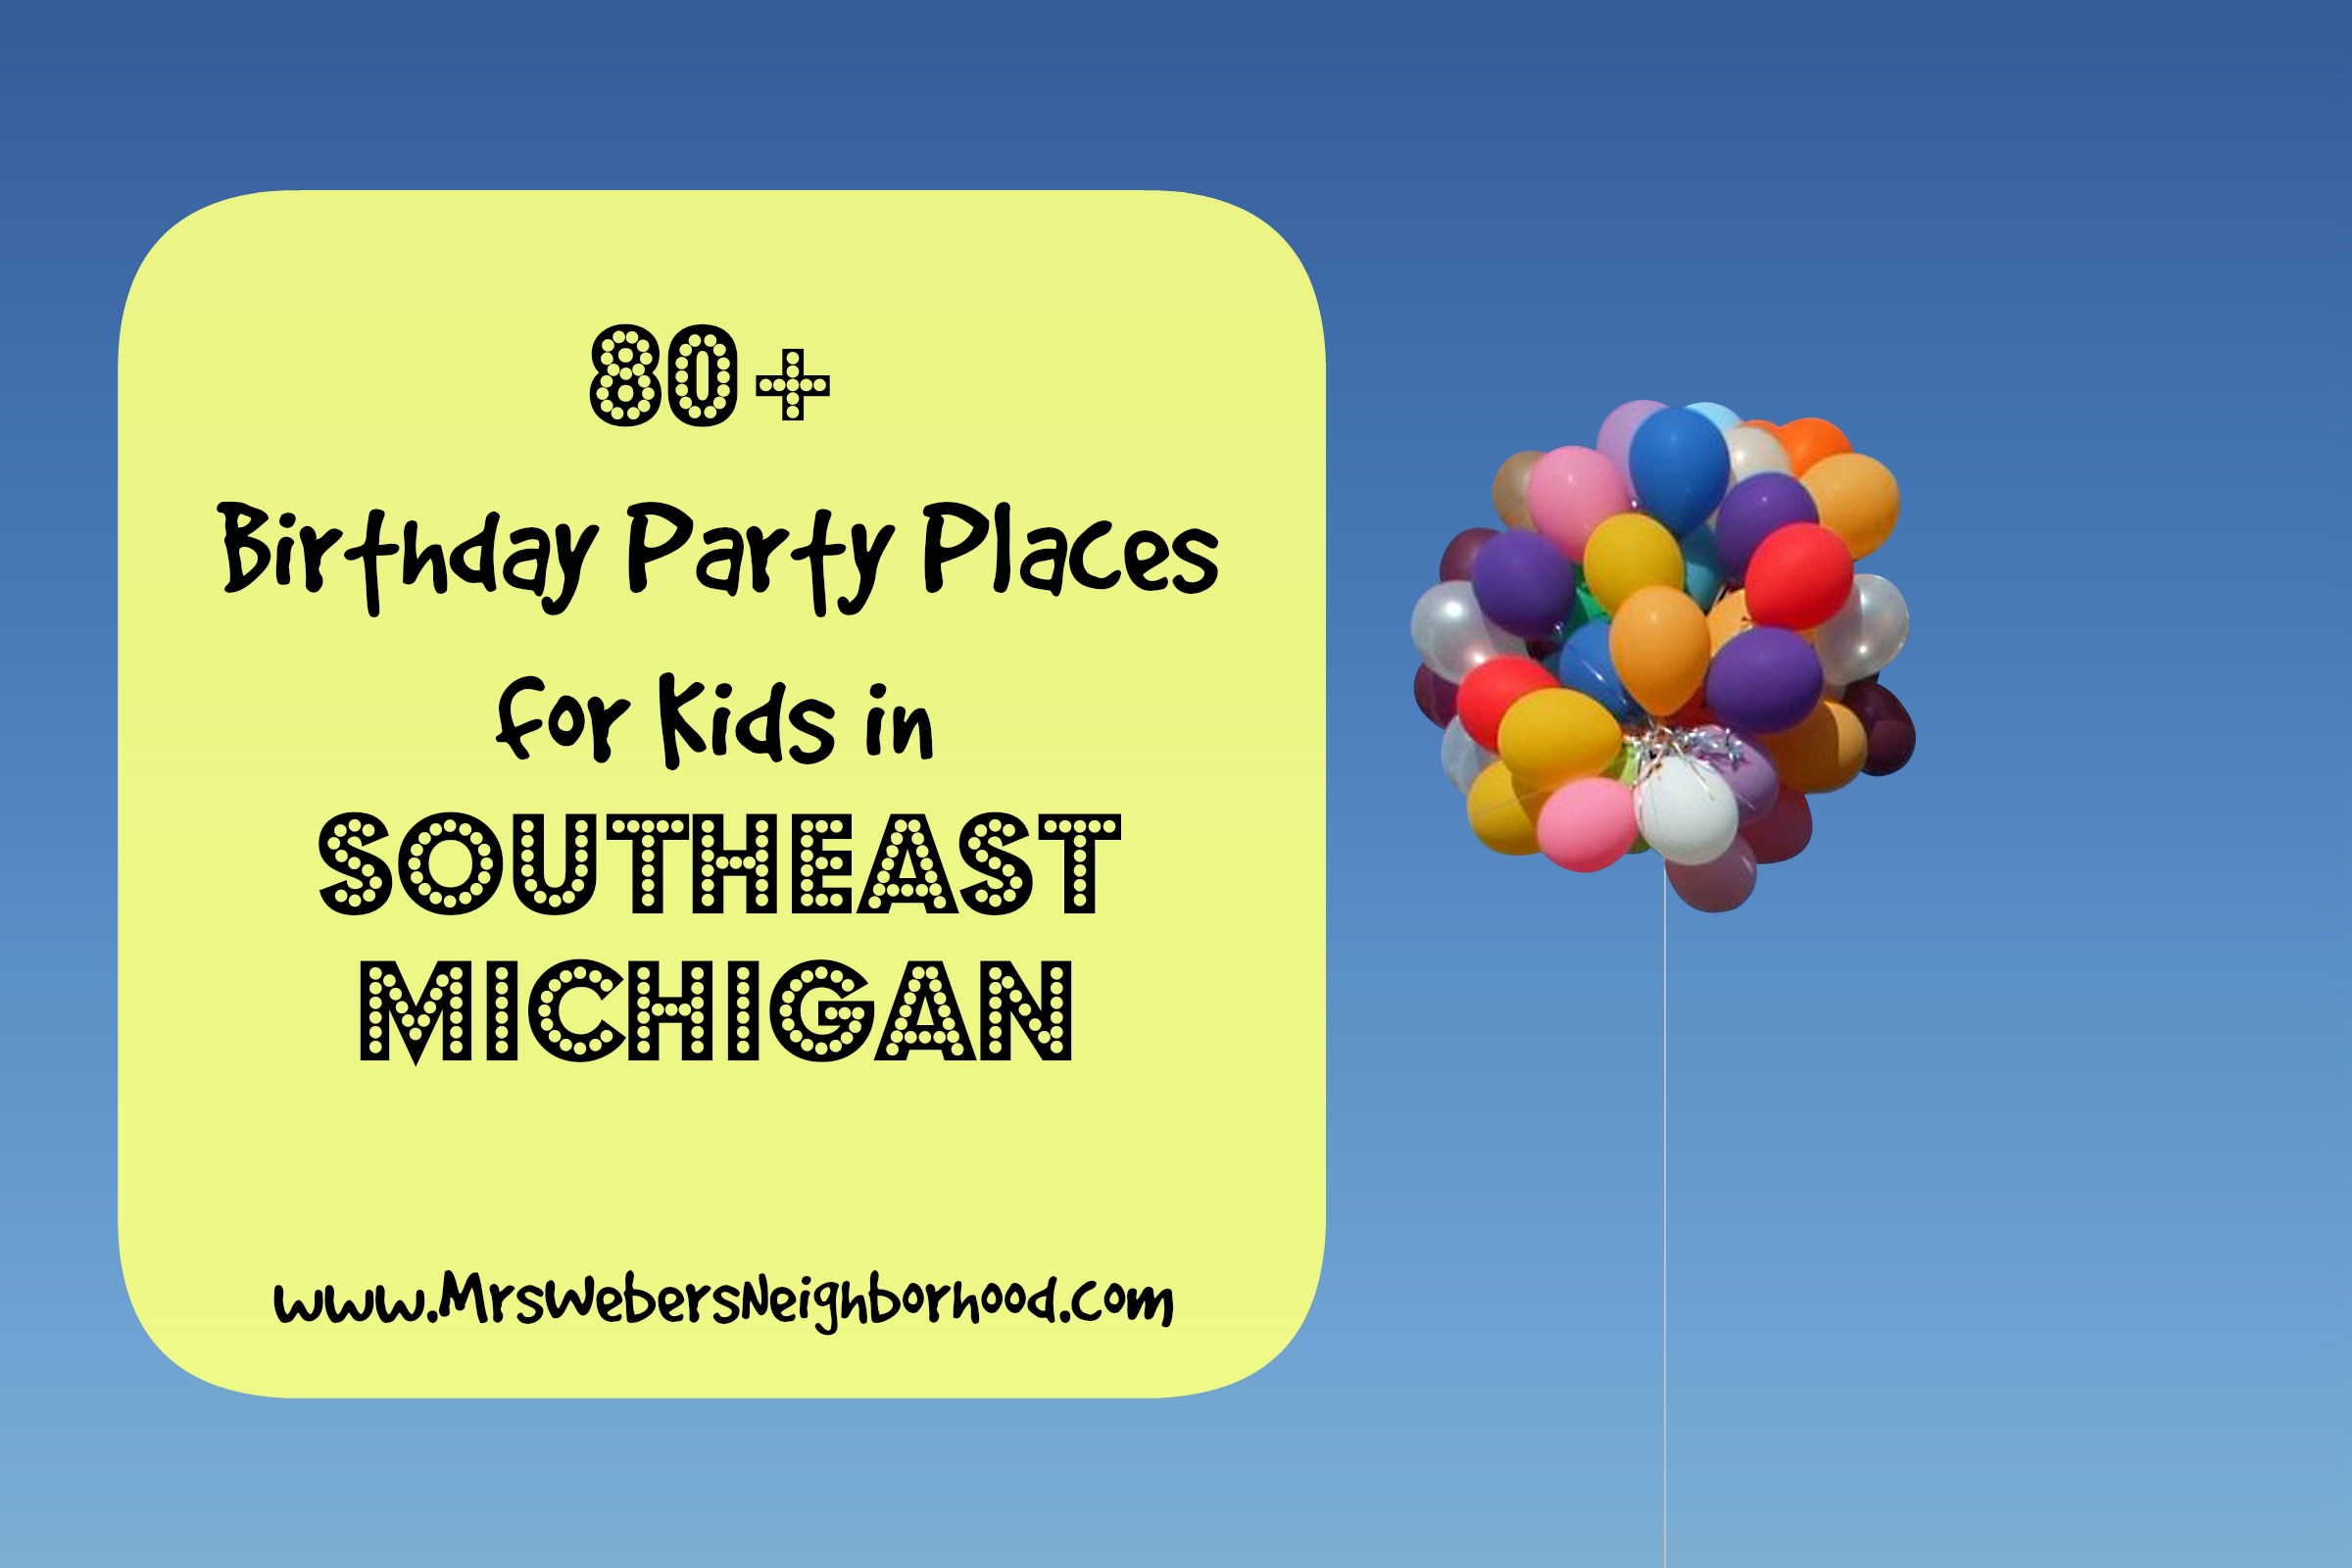 80+ Birthday Party Places for Kids in Southeast Michigan